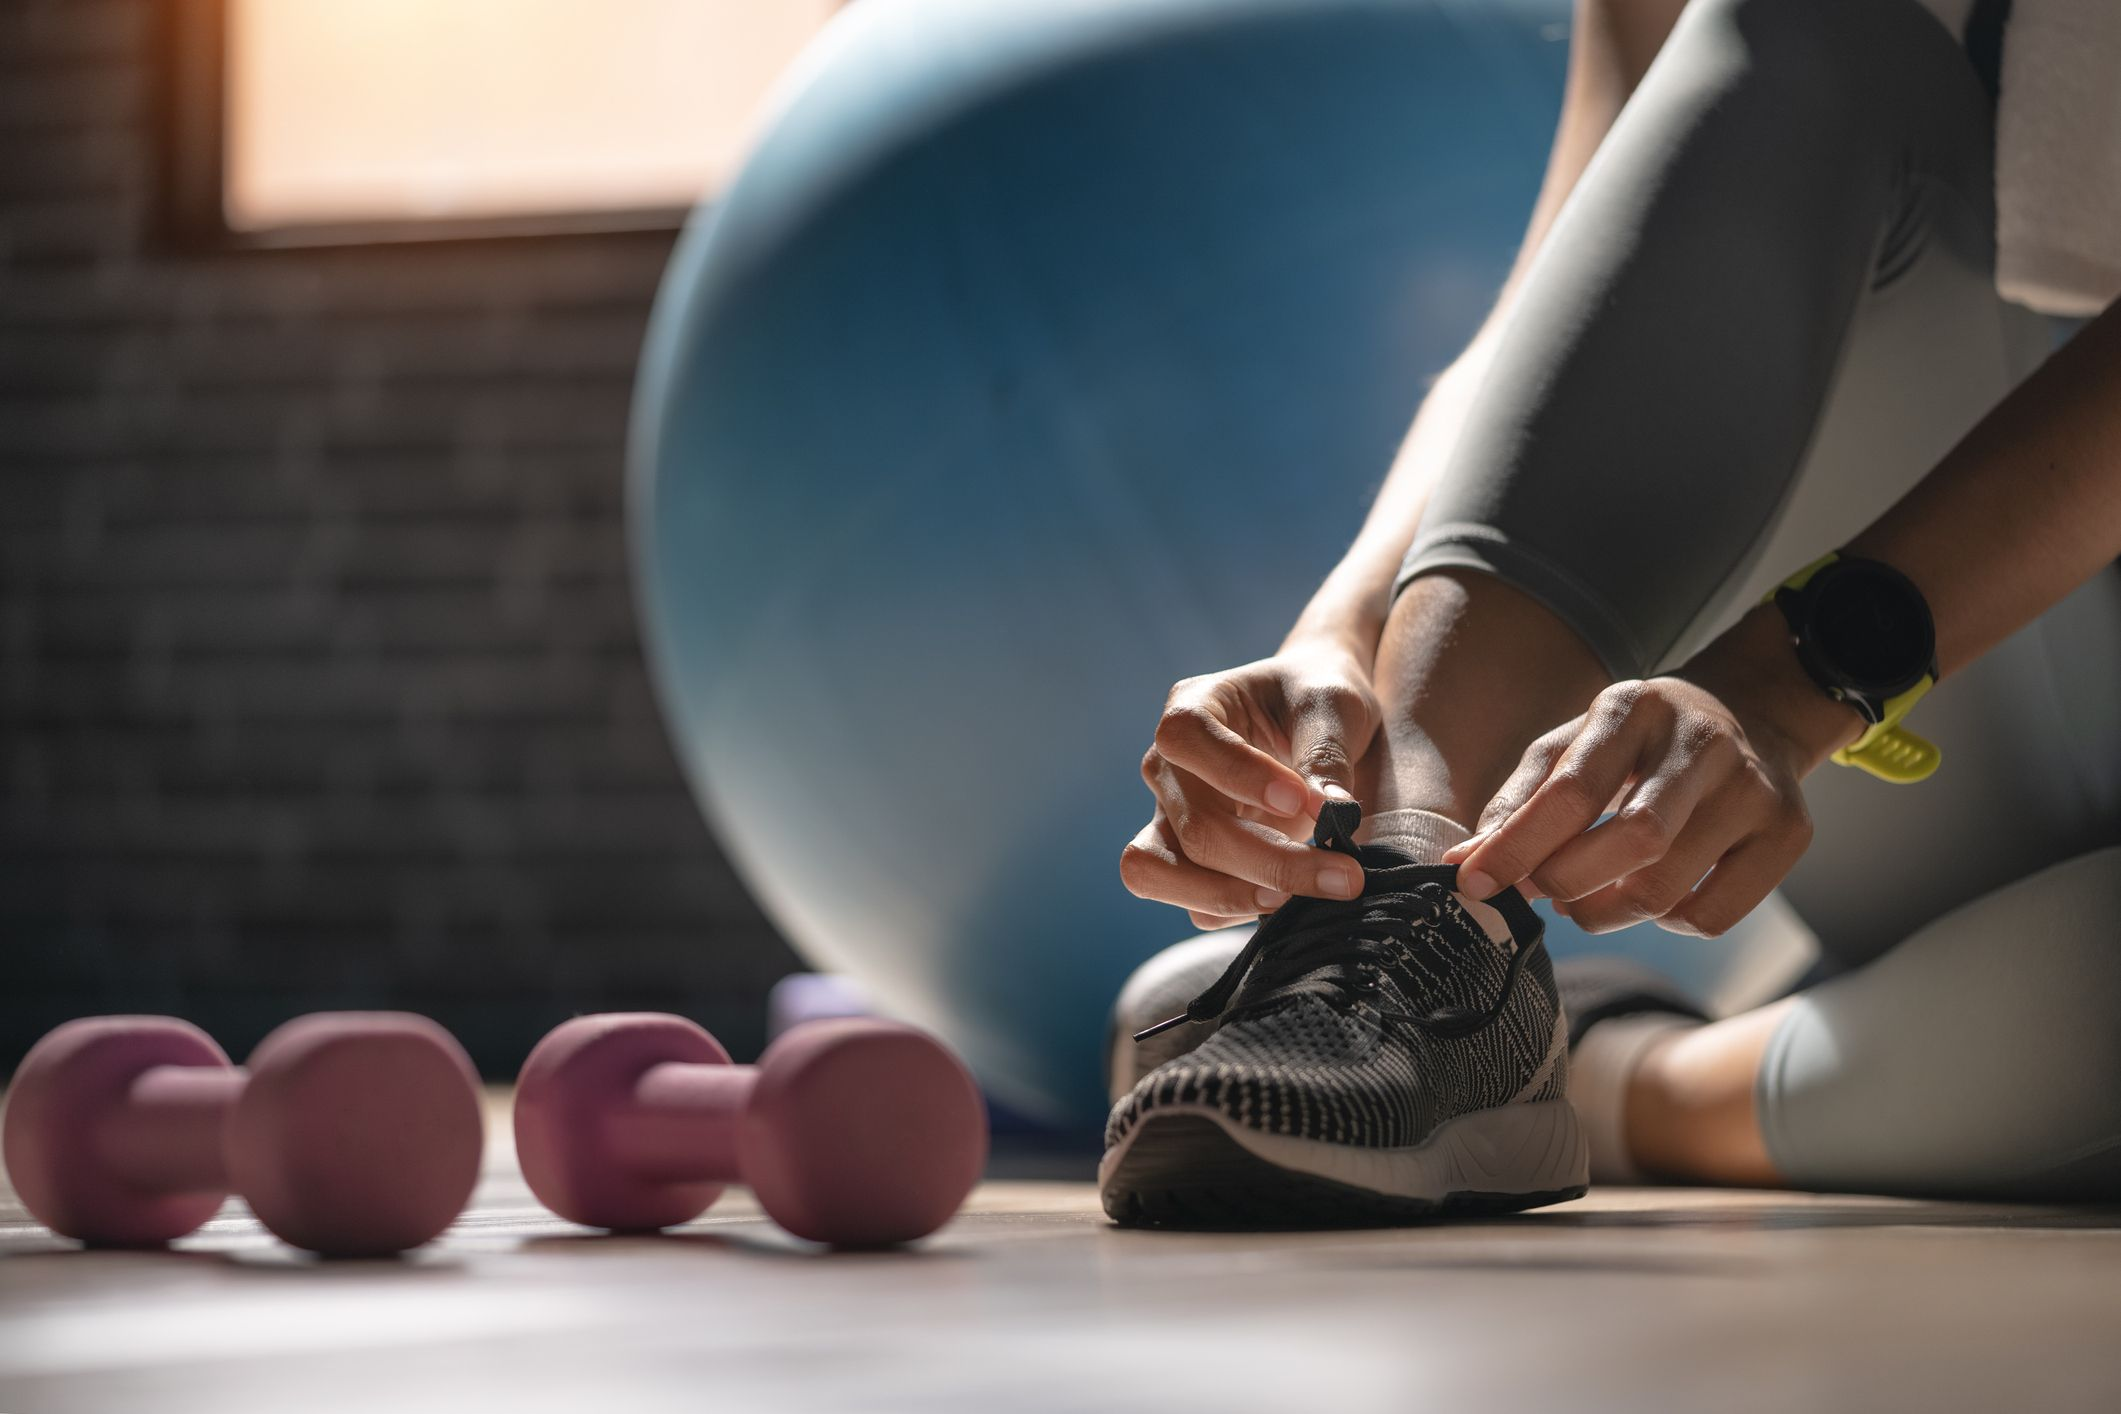 If You Have Heart Disease, Can You Exercise Safely?